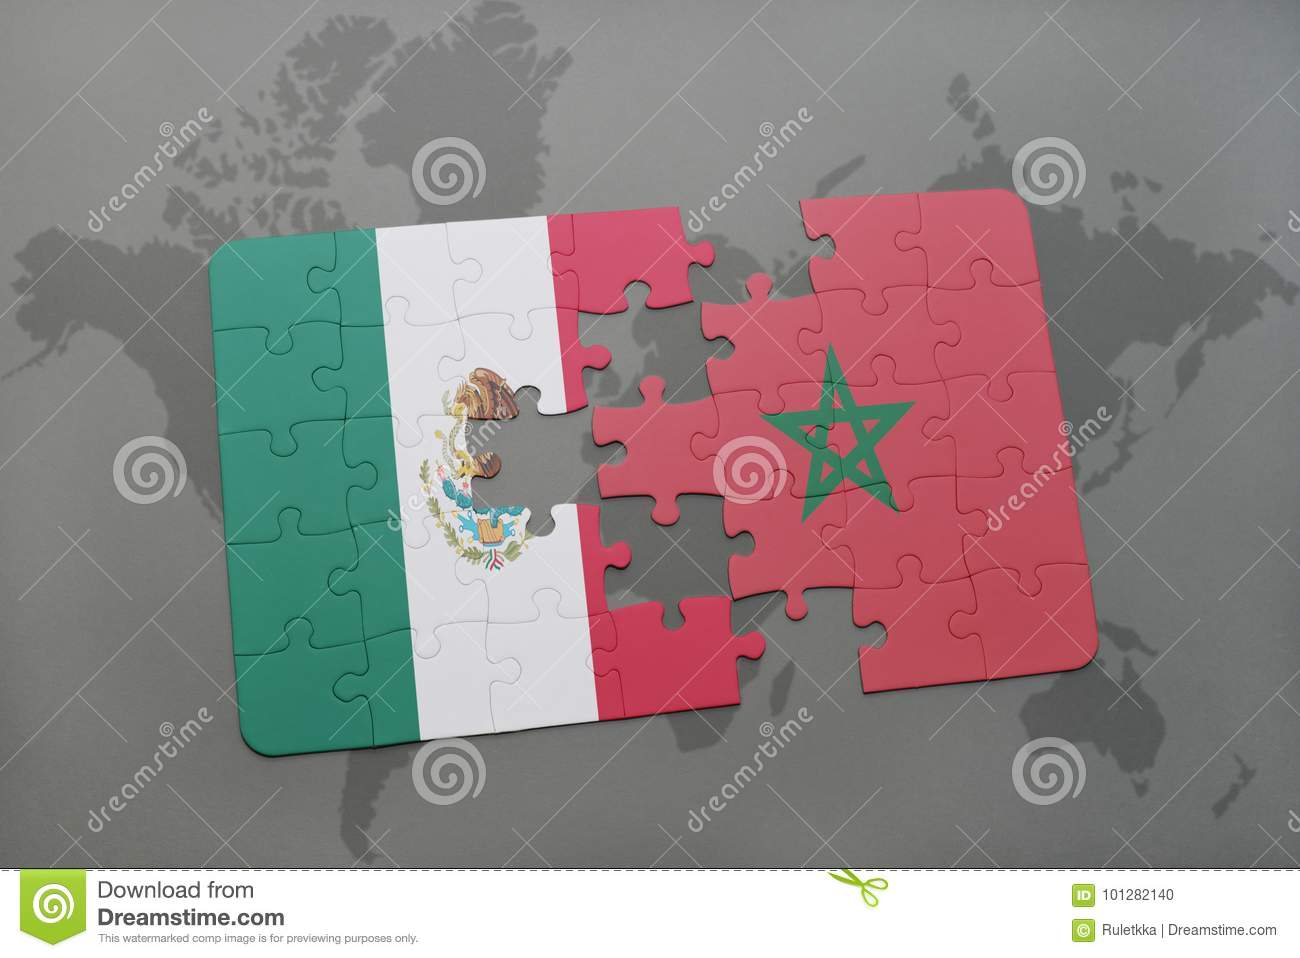 Puzzle With The National Flag Of Mexico And Morocco On A World Map ...